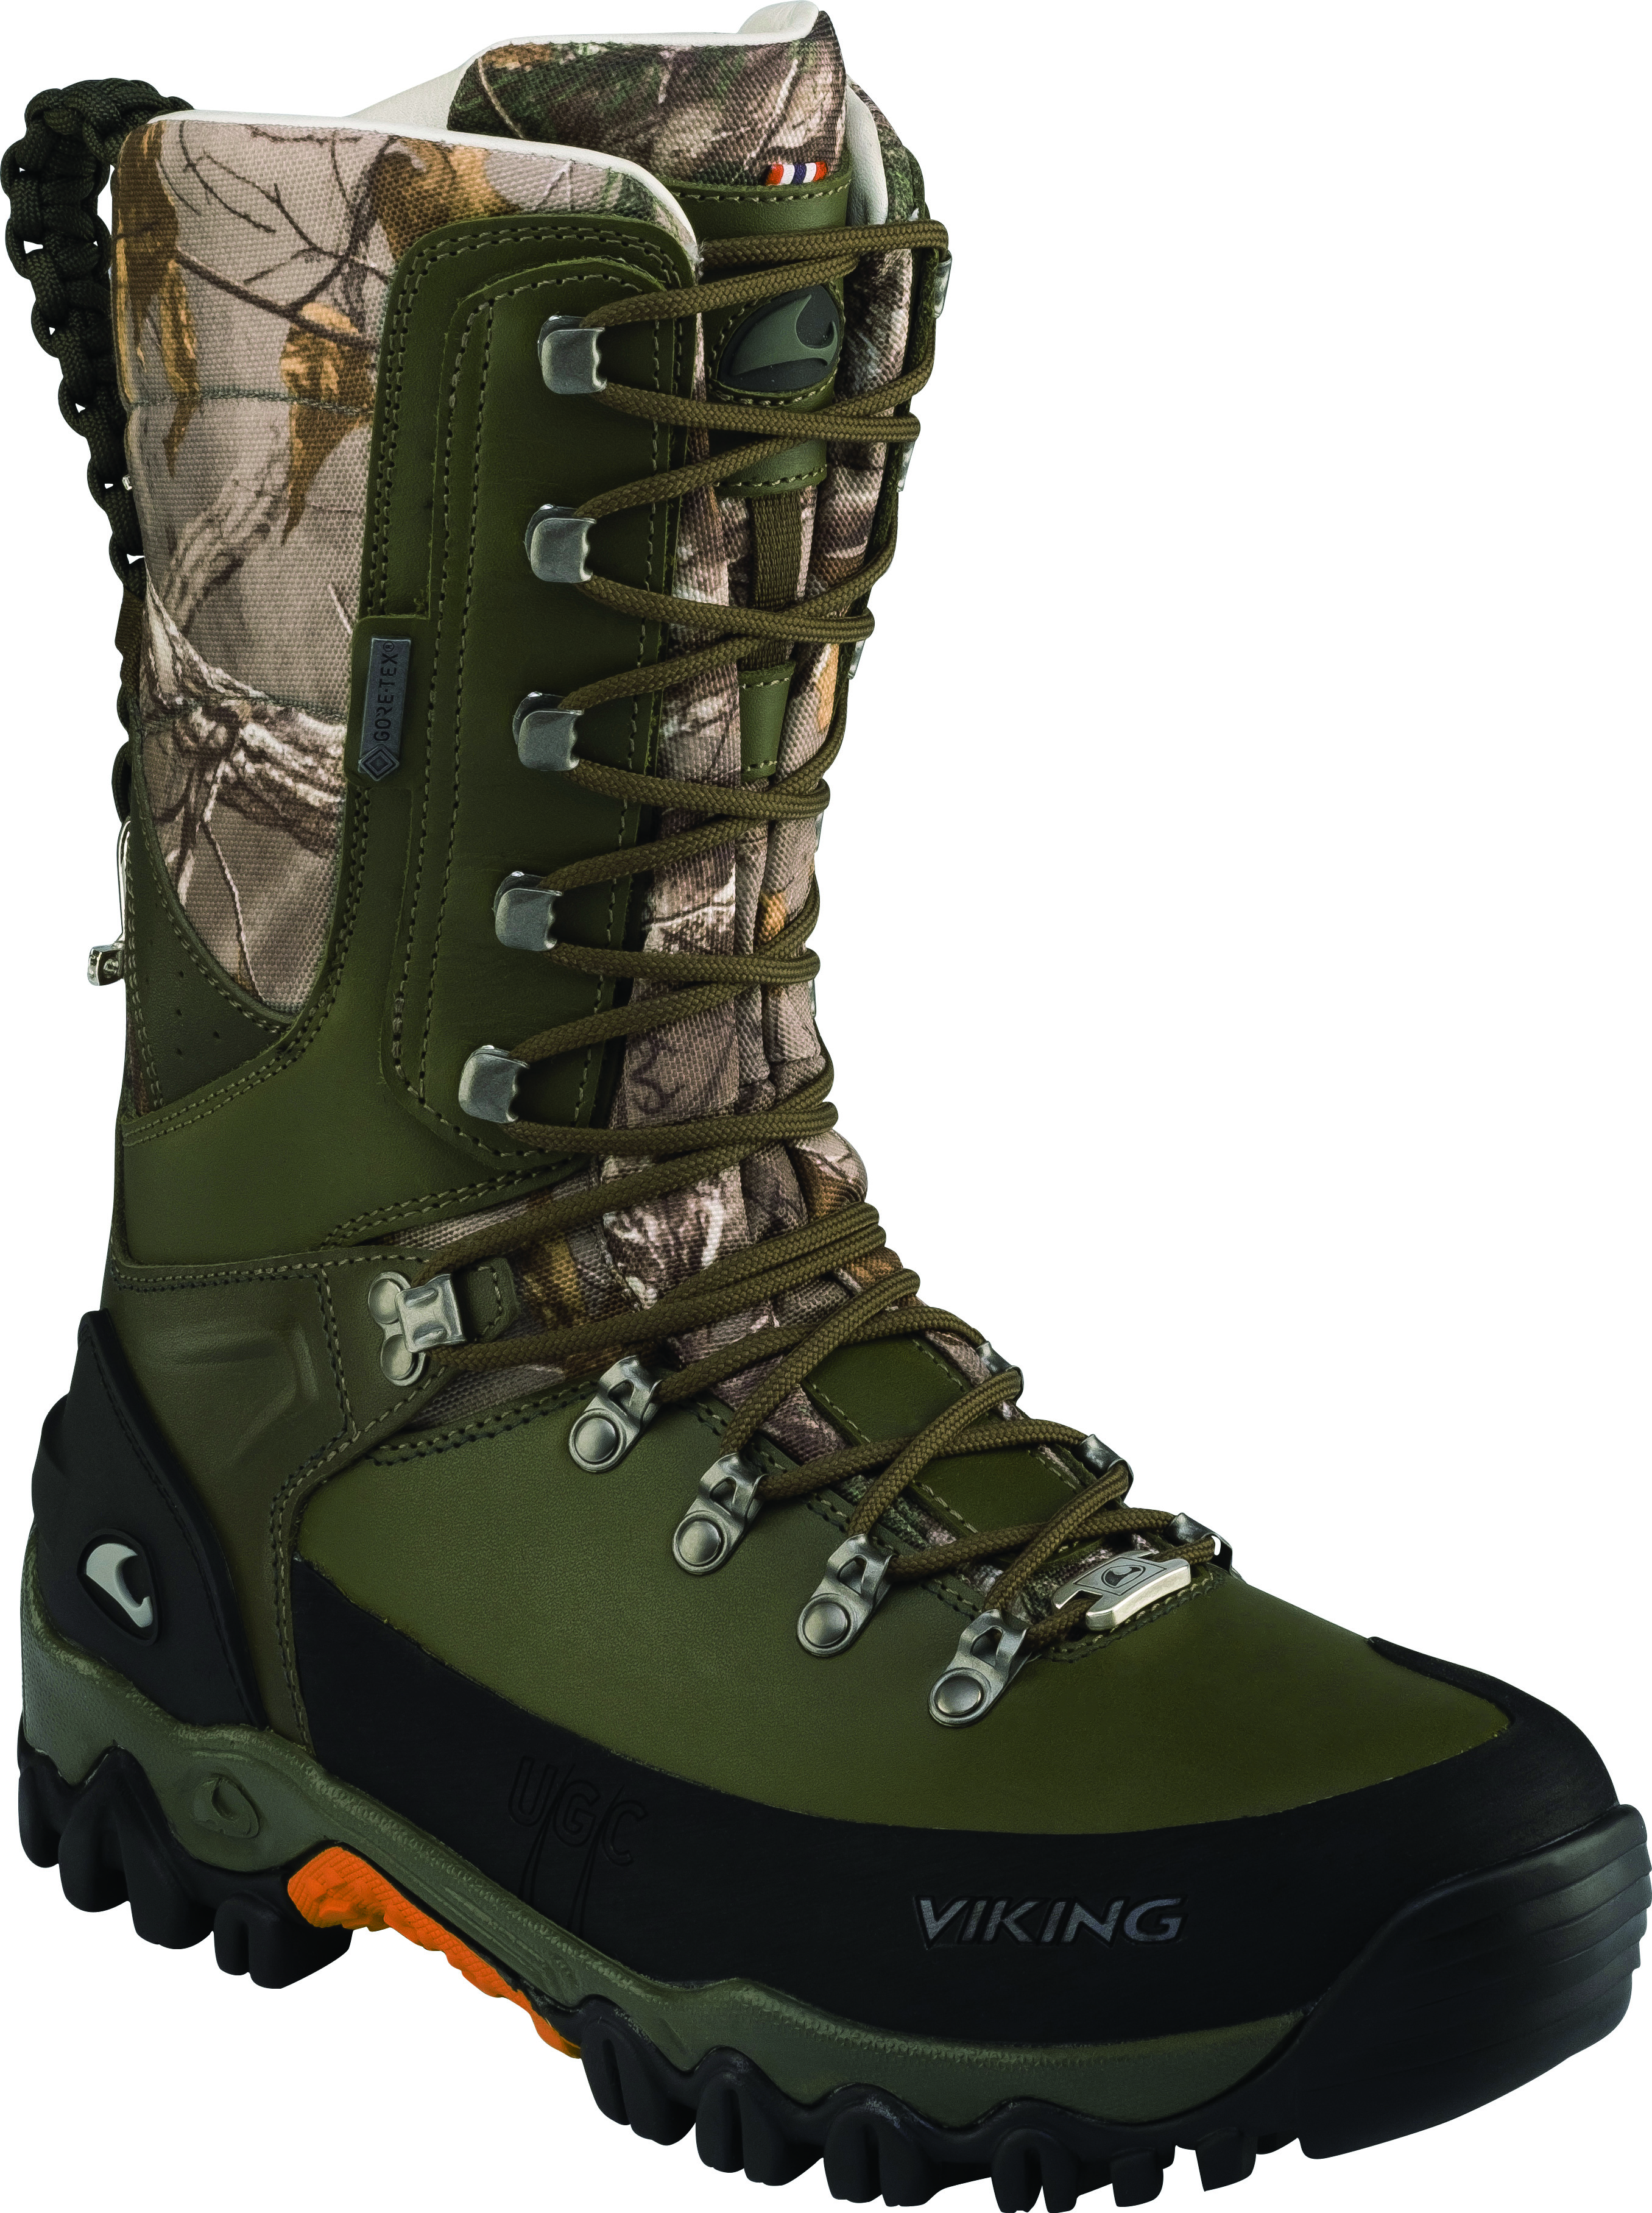 Viking Hunter Delux One Of The Most Innovative Boots A